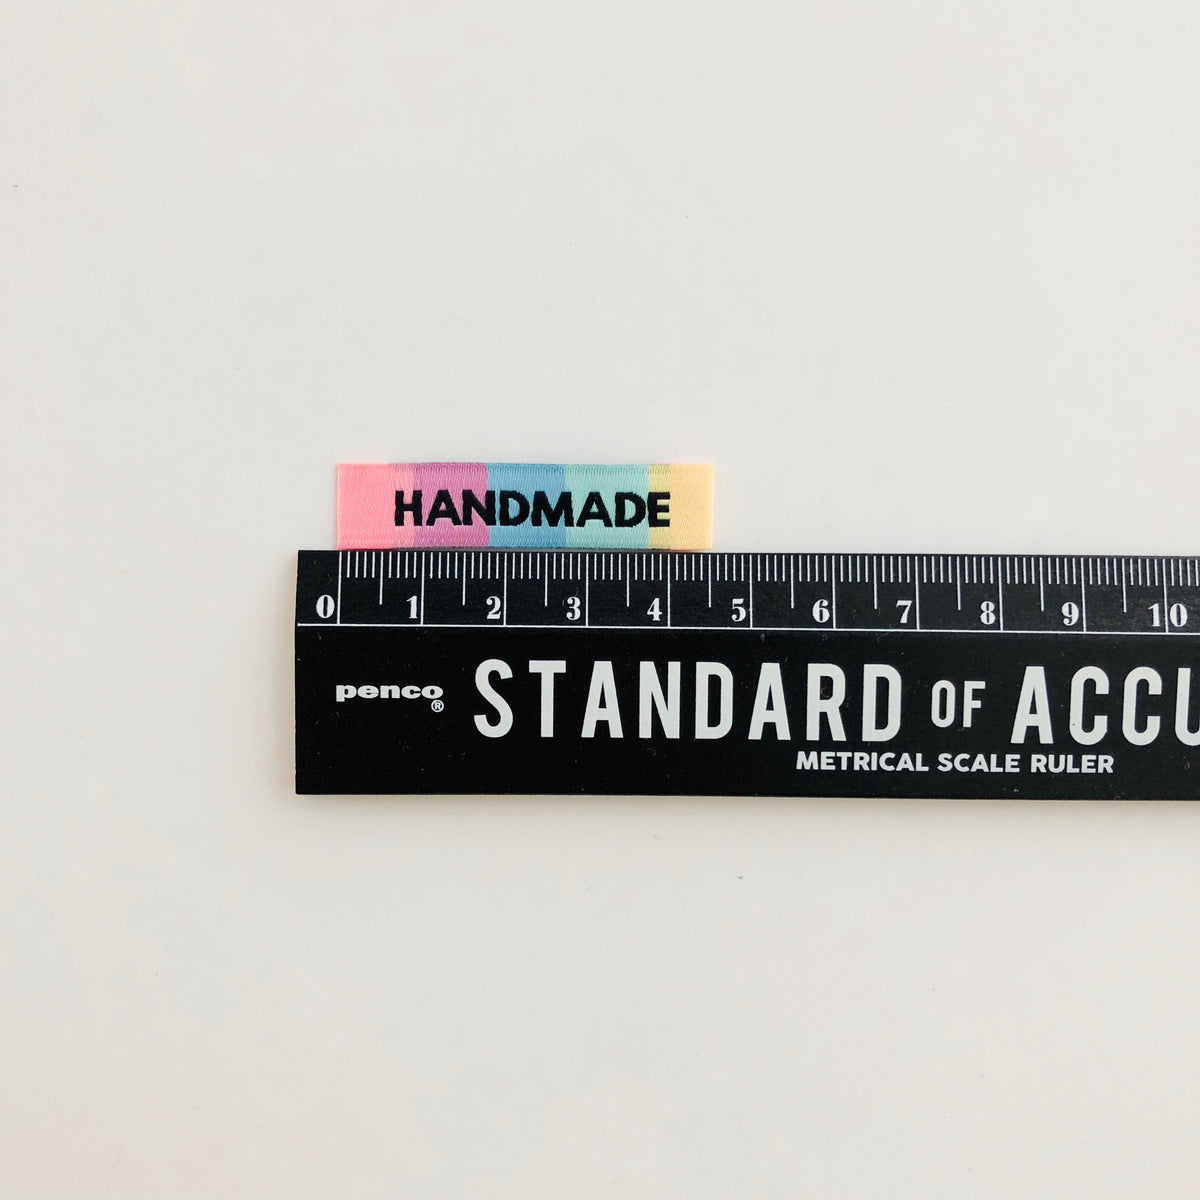 Rainbow HANDMADE Woven Labels Woven Label - Snuggly Monkey